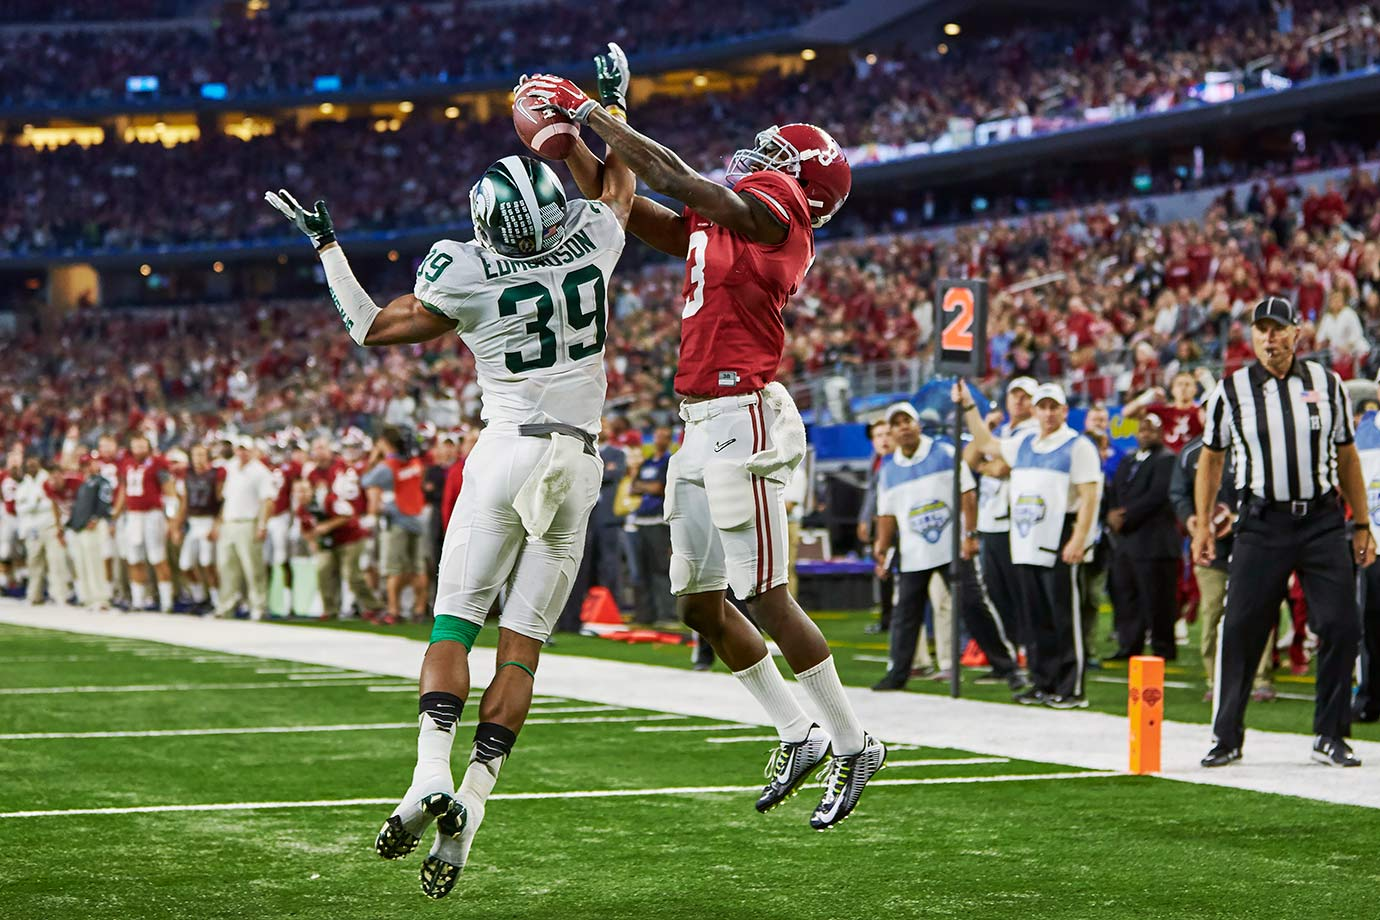 Ridley emerged as the Crimson Tide's new primary receiver in only his freshman season, catching 89 passes for 1,045 yards with seven touchdowns. He came up big late in the season, gaining 138 yards with two scores in the playoff semifinal against Michigan State.